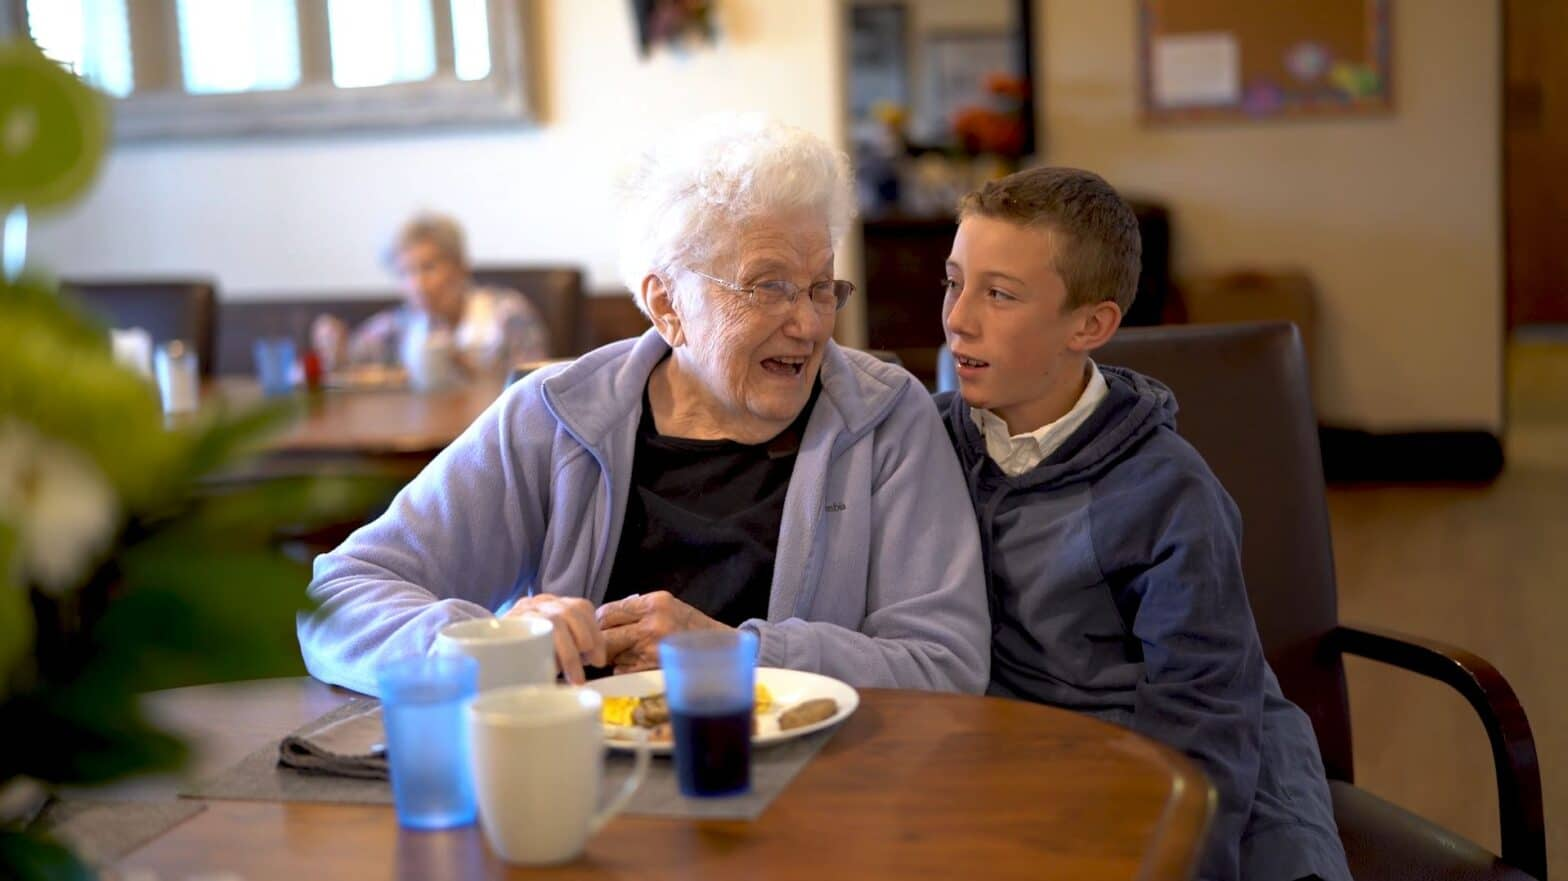 Breakfast Together with Family - Assisted Living